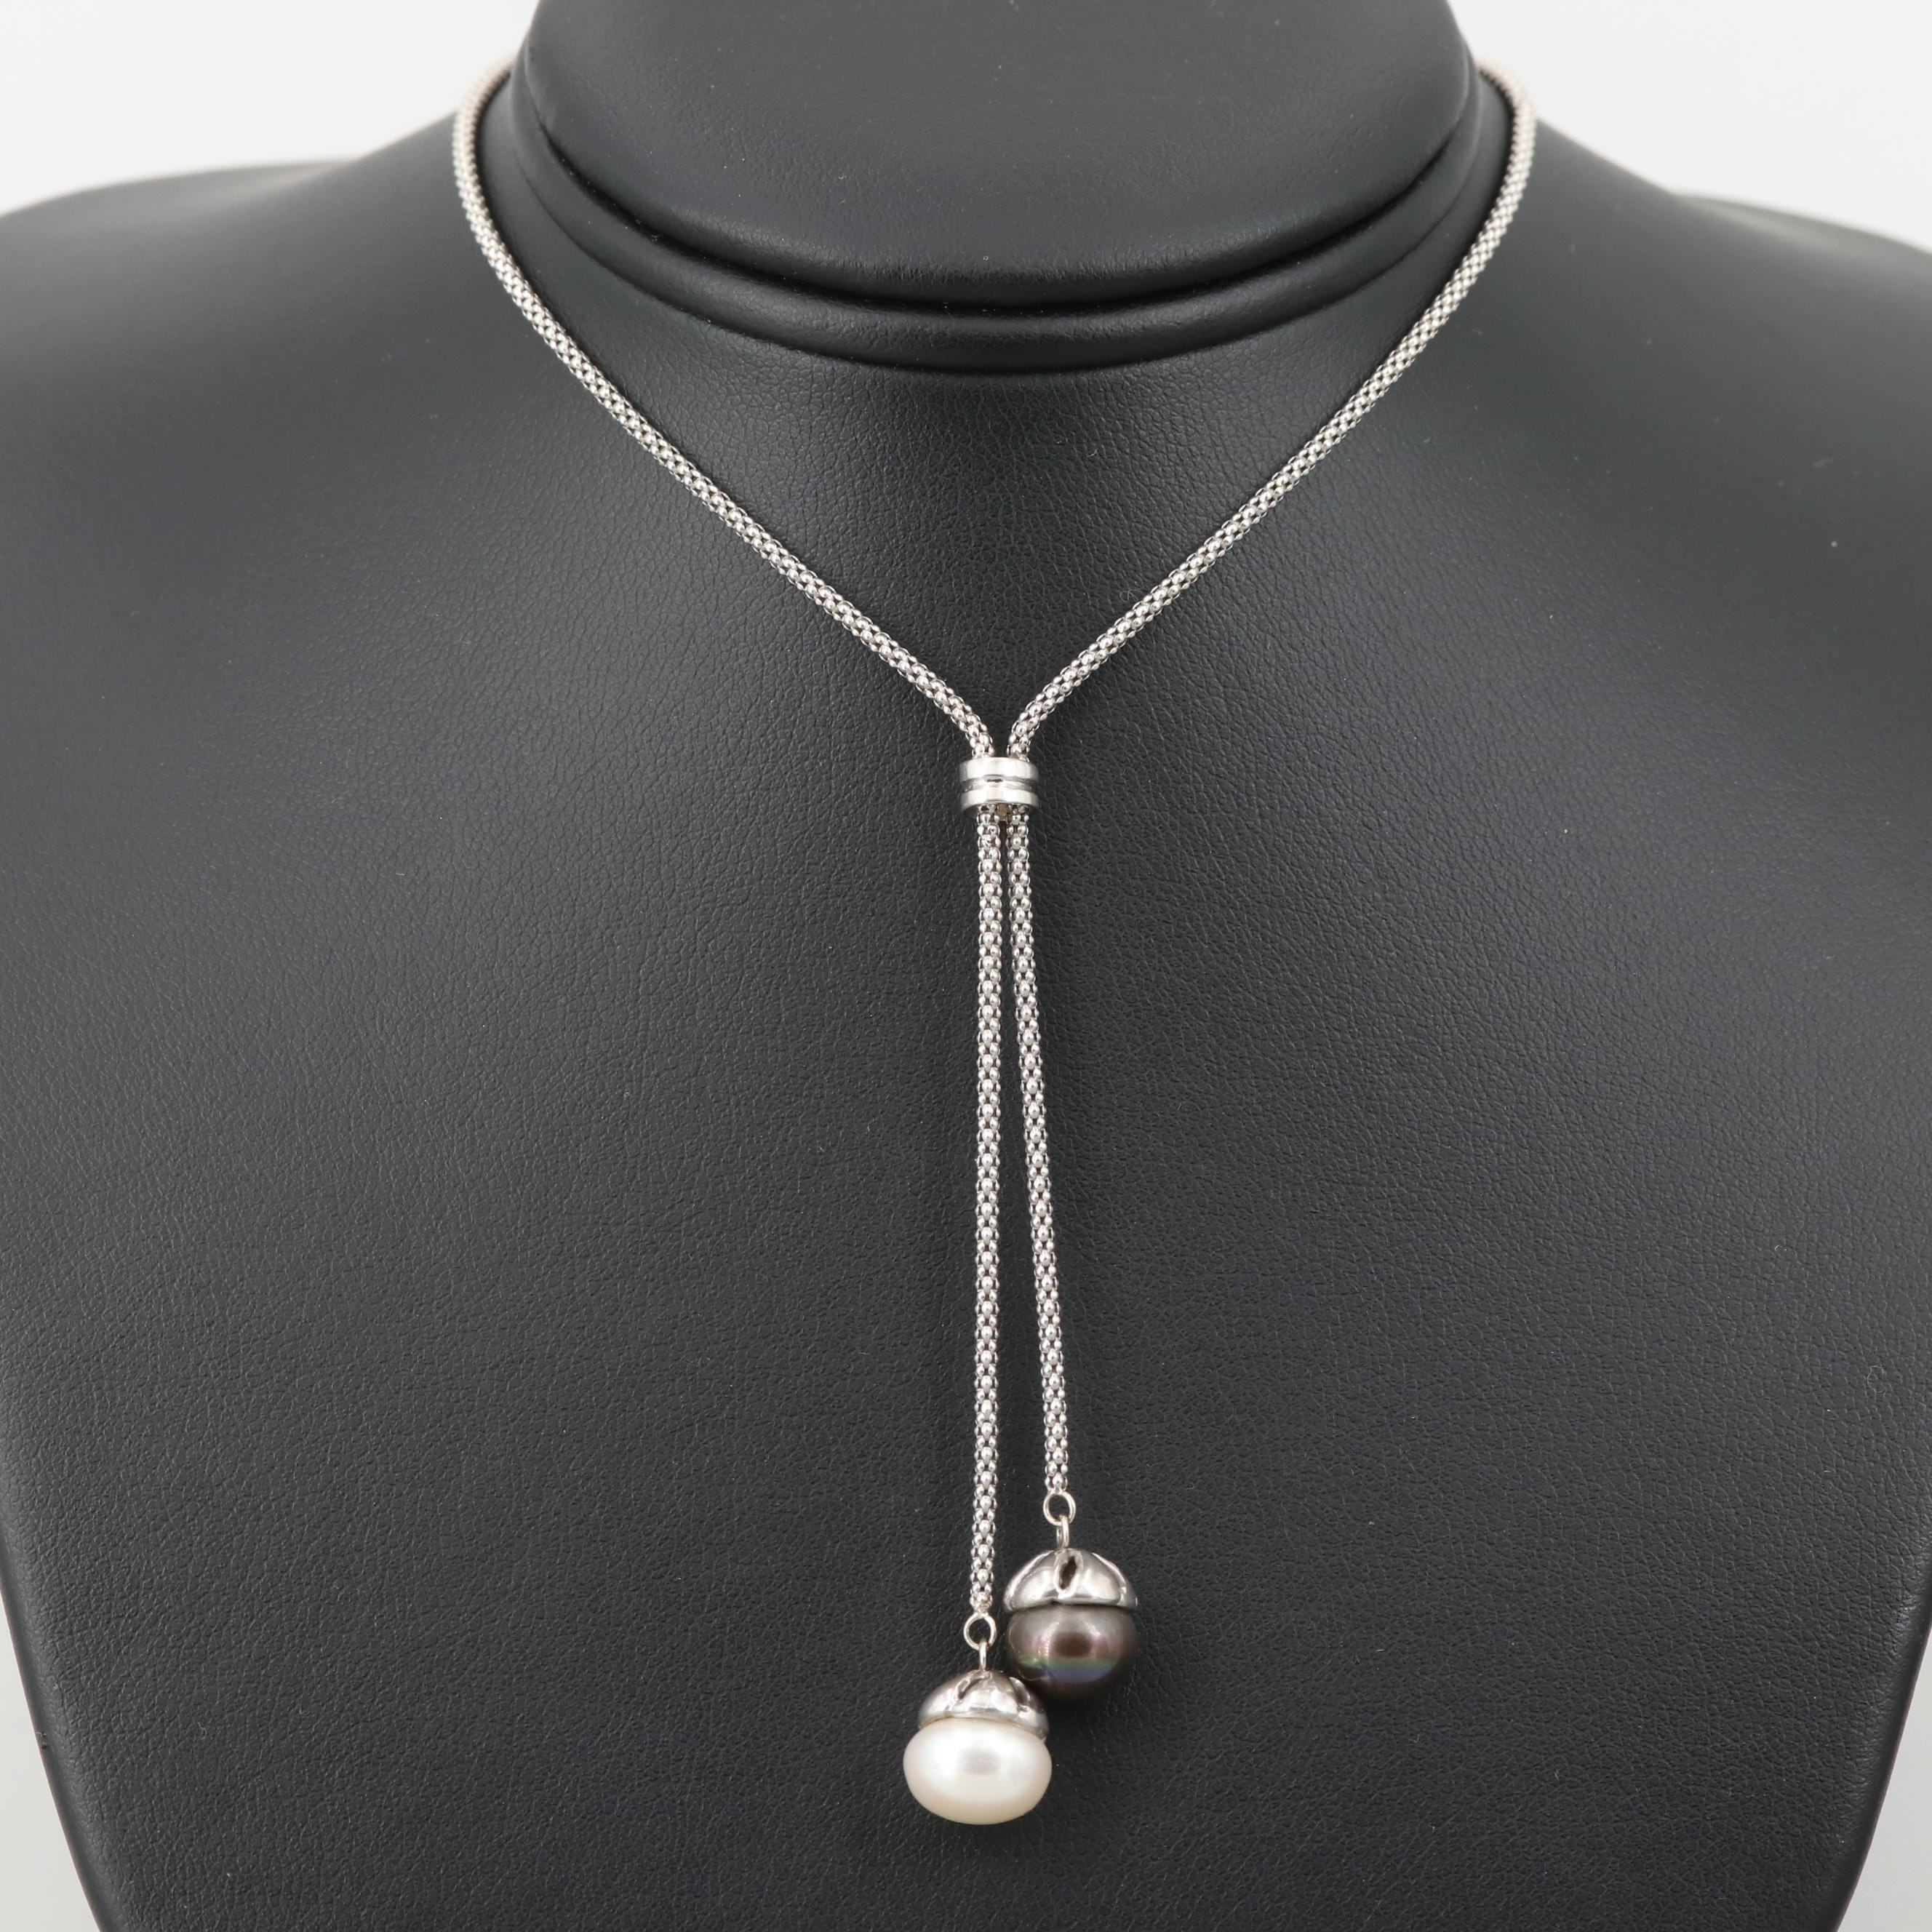 14K White Gold Cultured Pearl Popcorn Chain Necklace